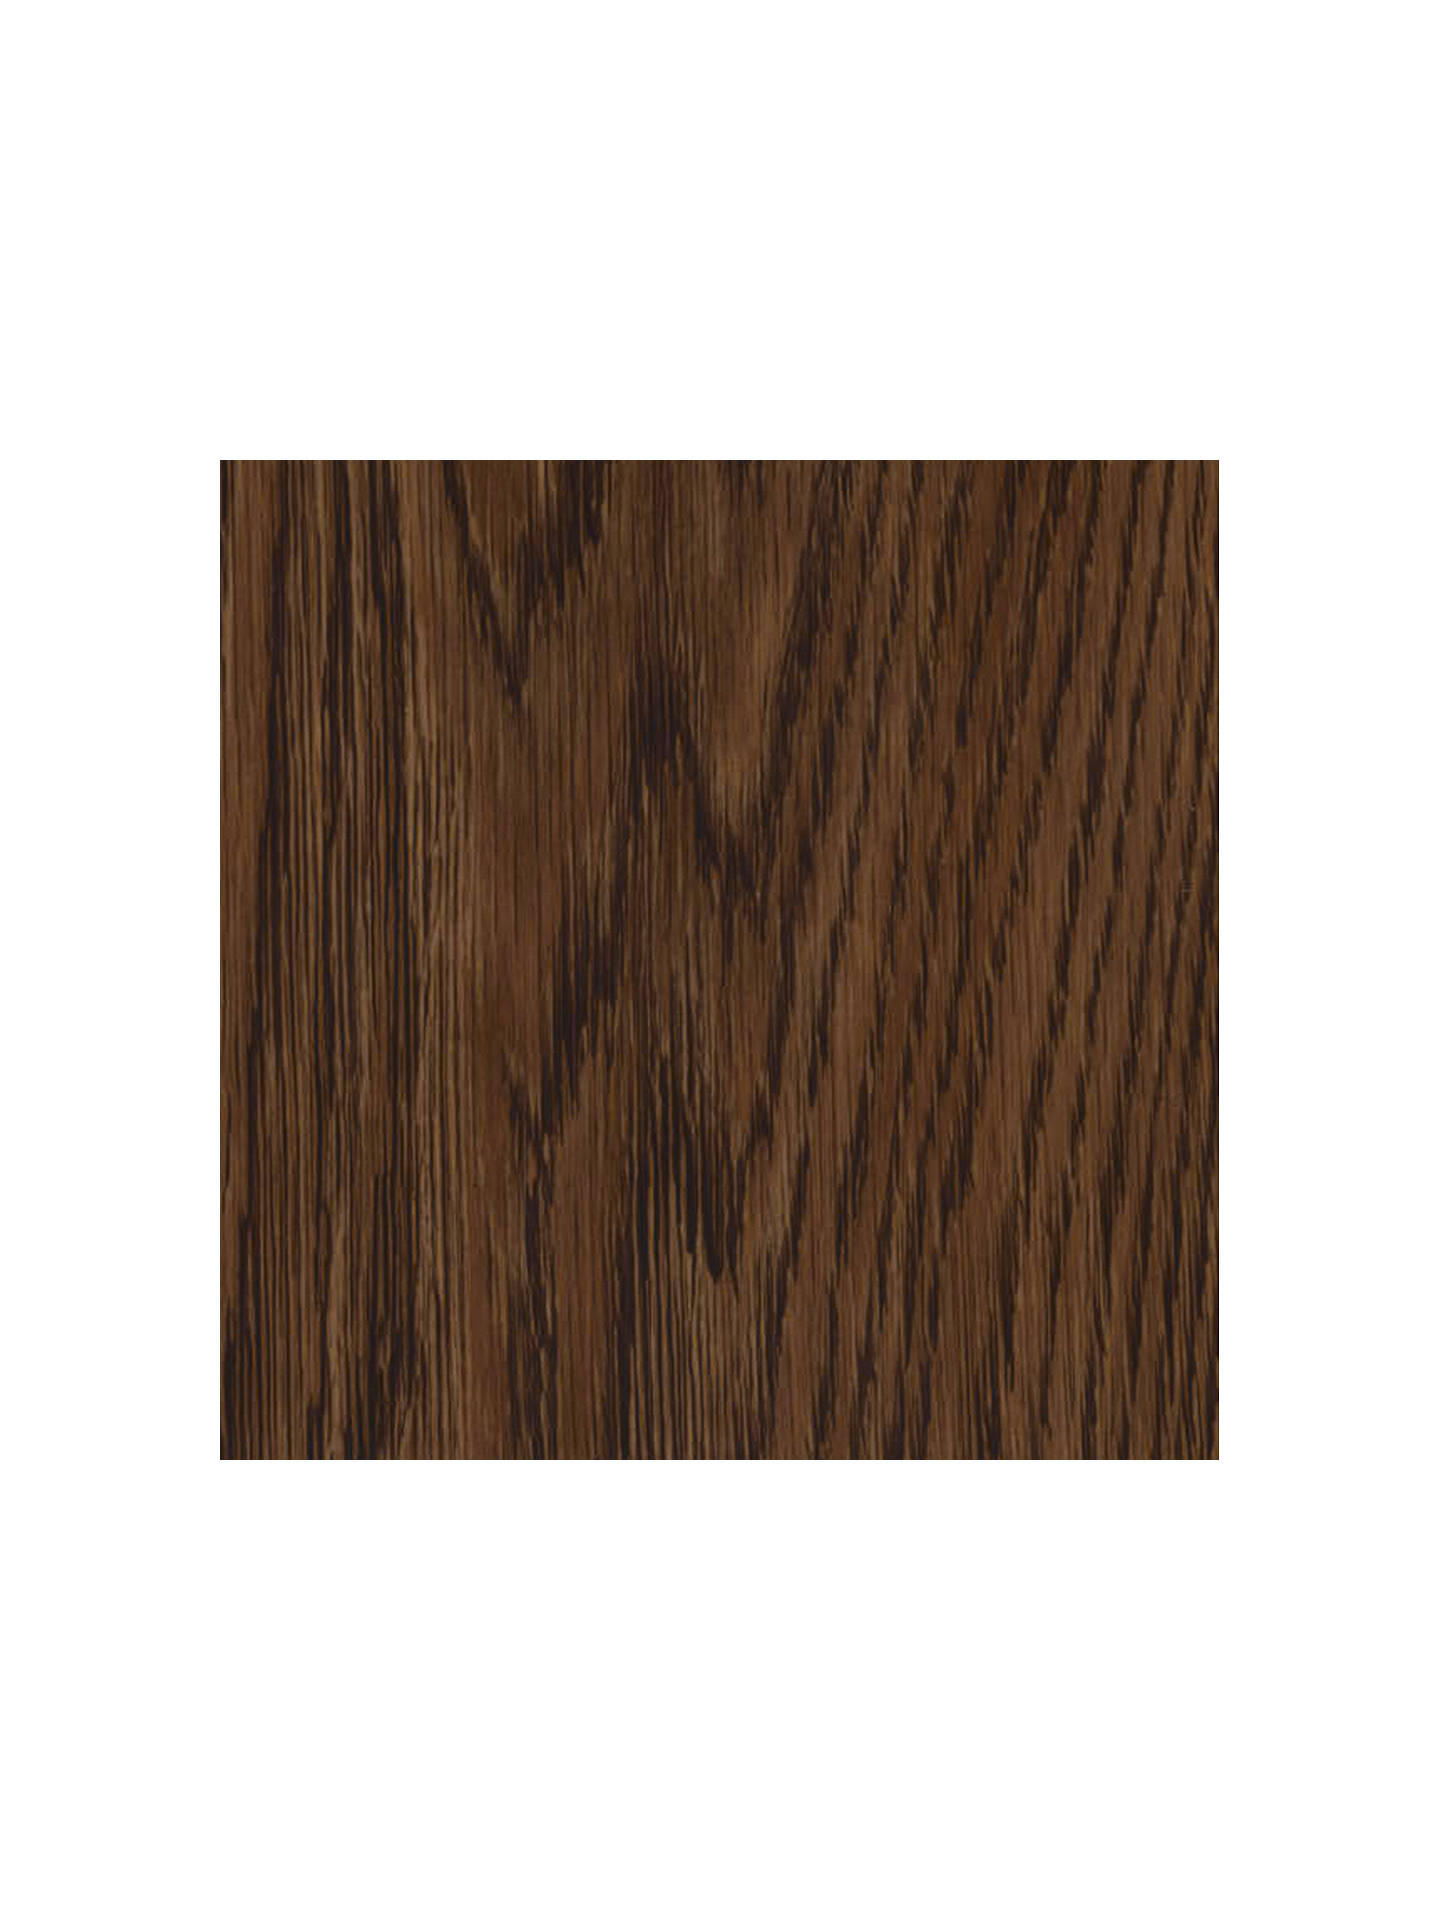 BuyHarvey Maria Wood Effect Luxury Vinyl Floor Tiles, Antique Oak Online at johnlewis.com